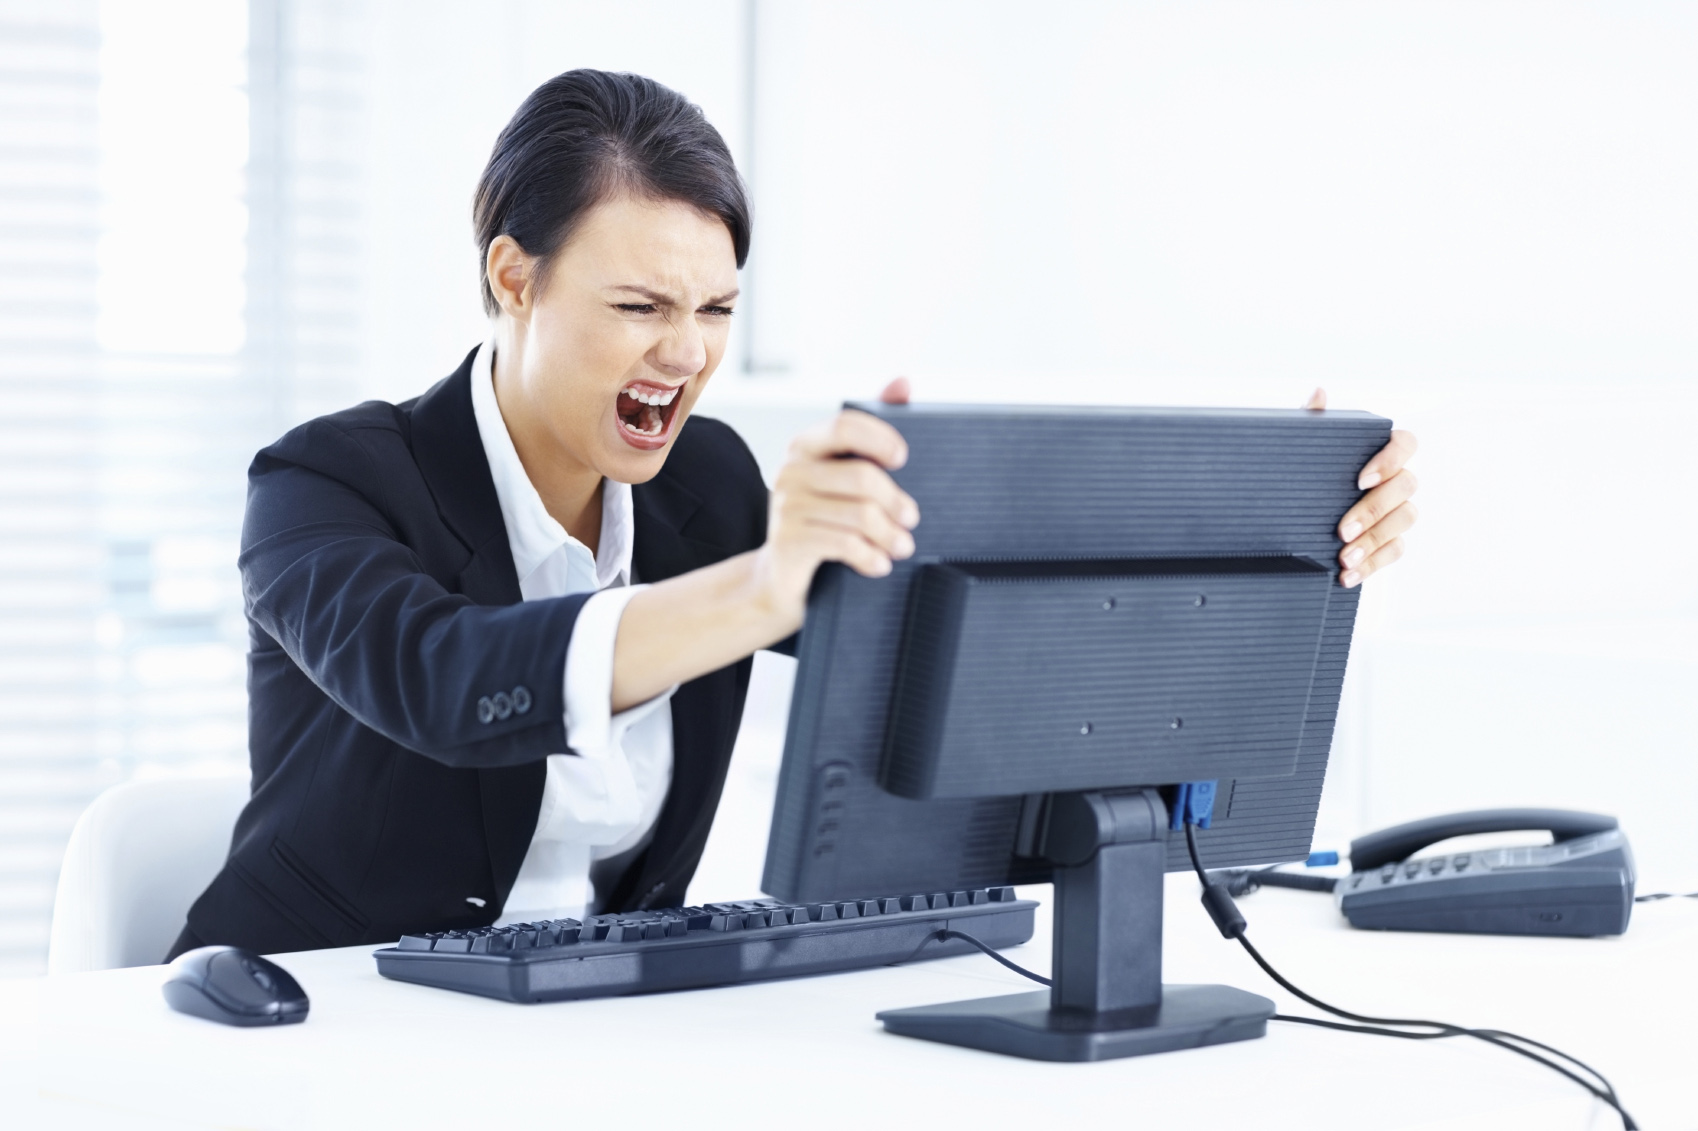 Angry_Lady_Computer_Office